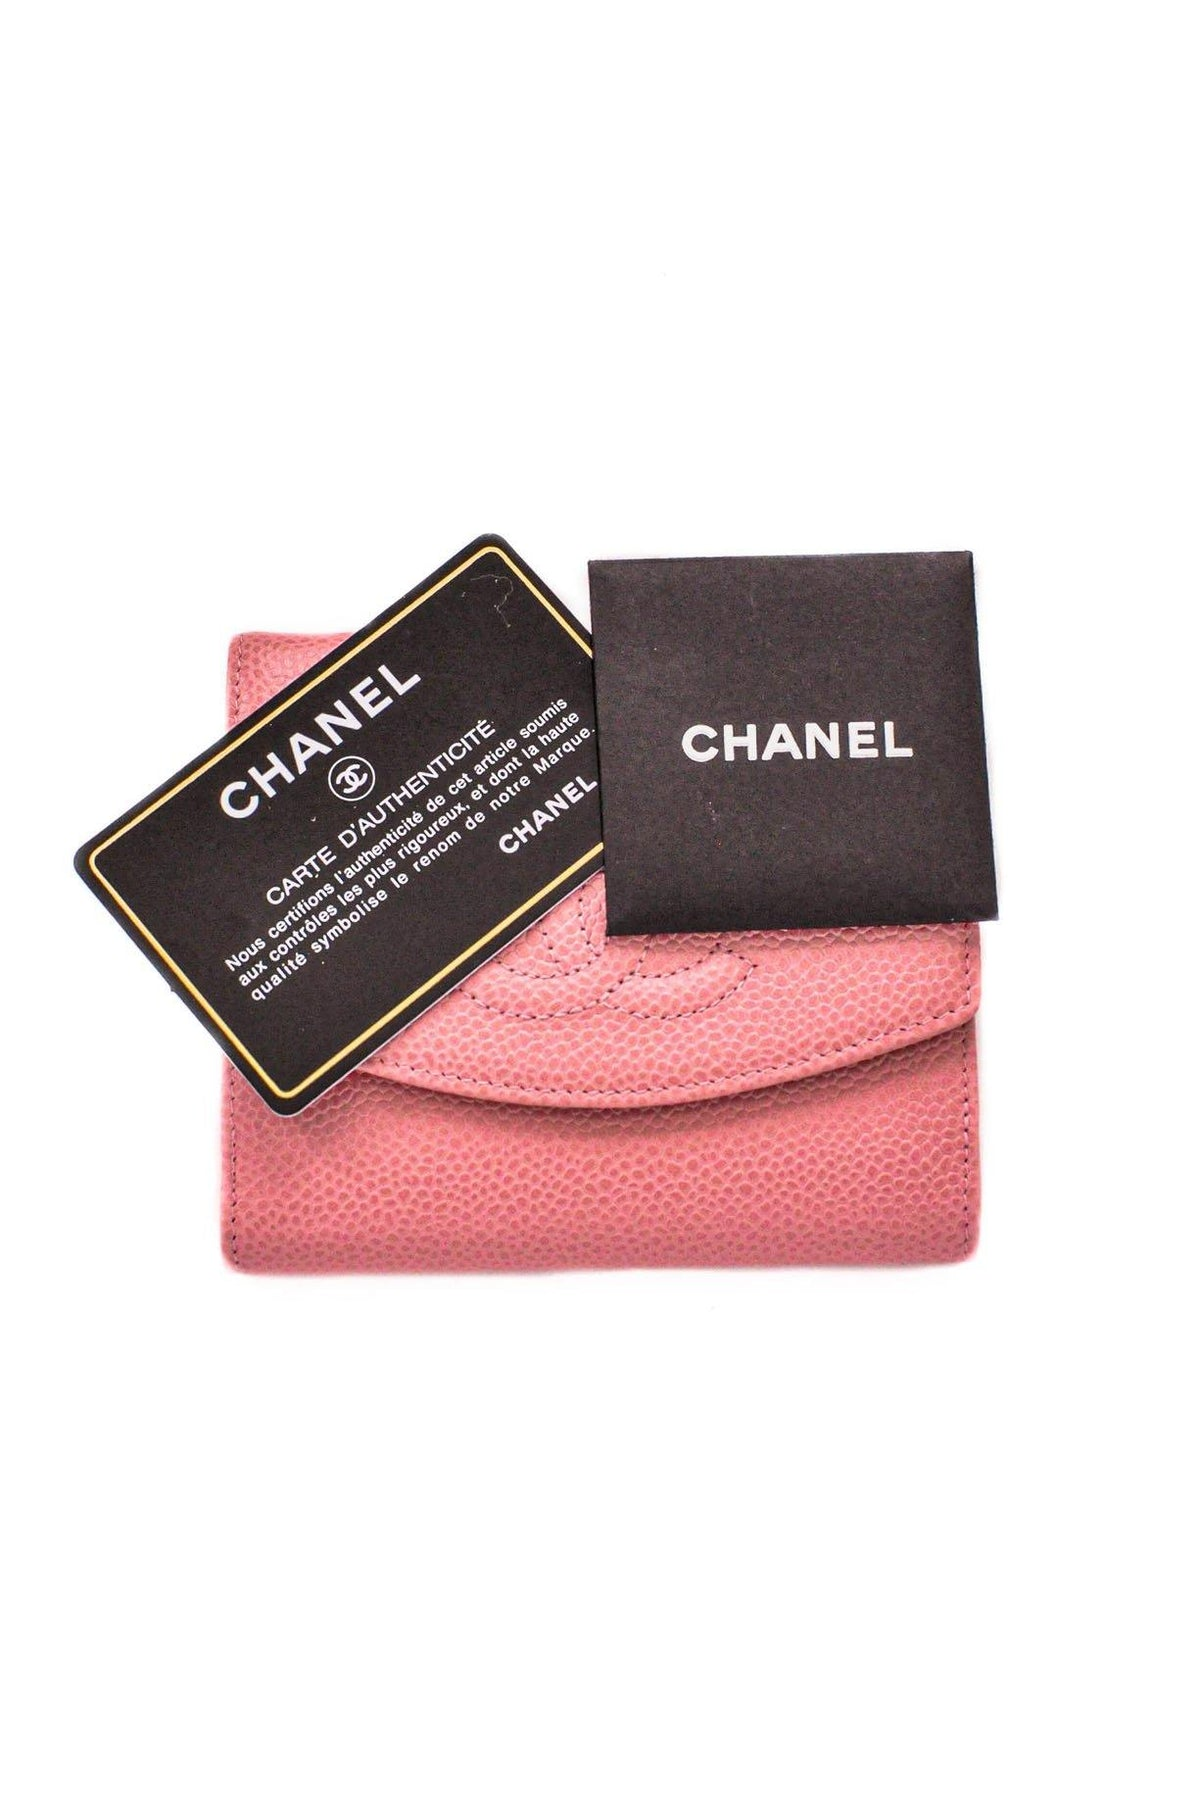 Vintage Chanel CC Pink Caviar Leather Bi-Fold Wallet from Sweet and SPark